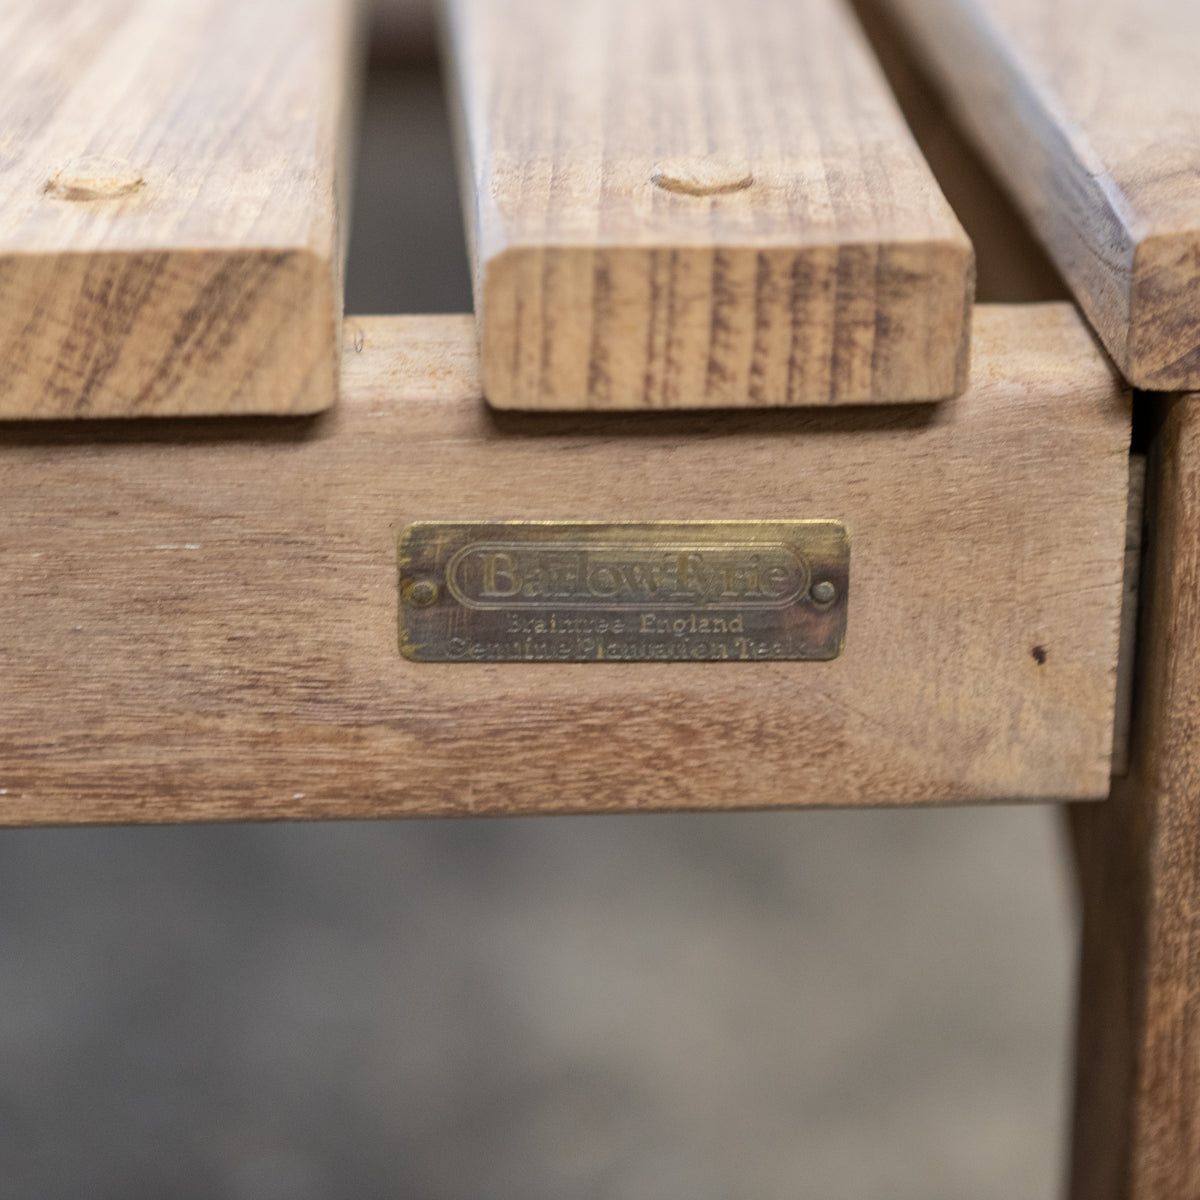 Reclaimed Barlow Tyrie Teak Garden Bench & Table Set | The Architectural Forum